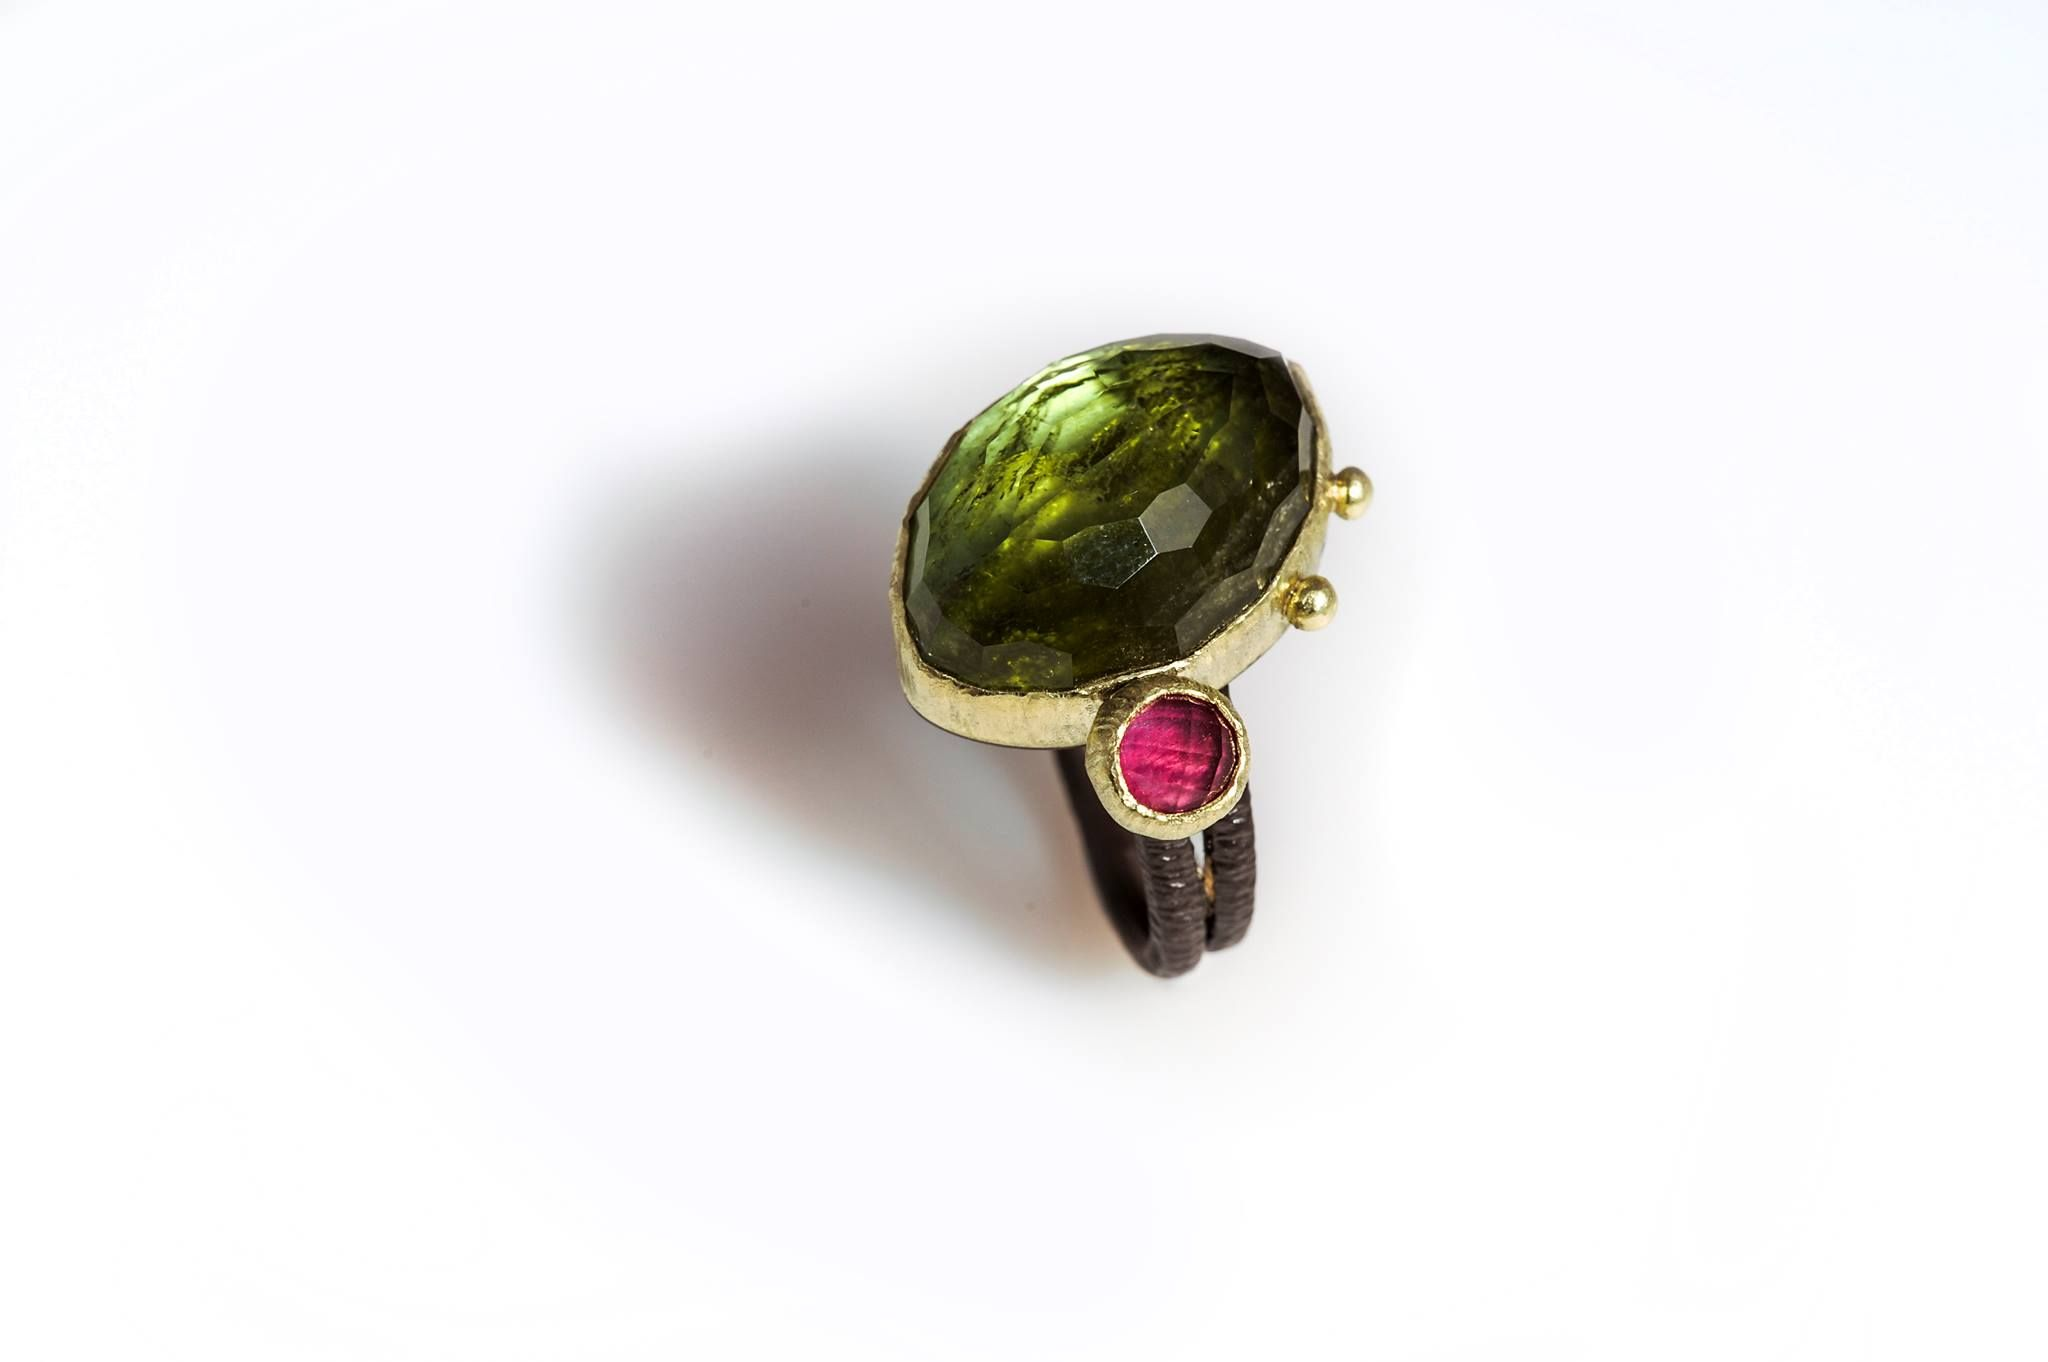 tourmaline rock crystal doublet with pink tourmaline